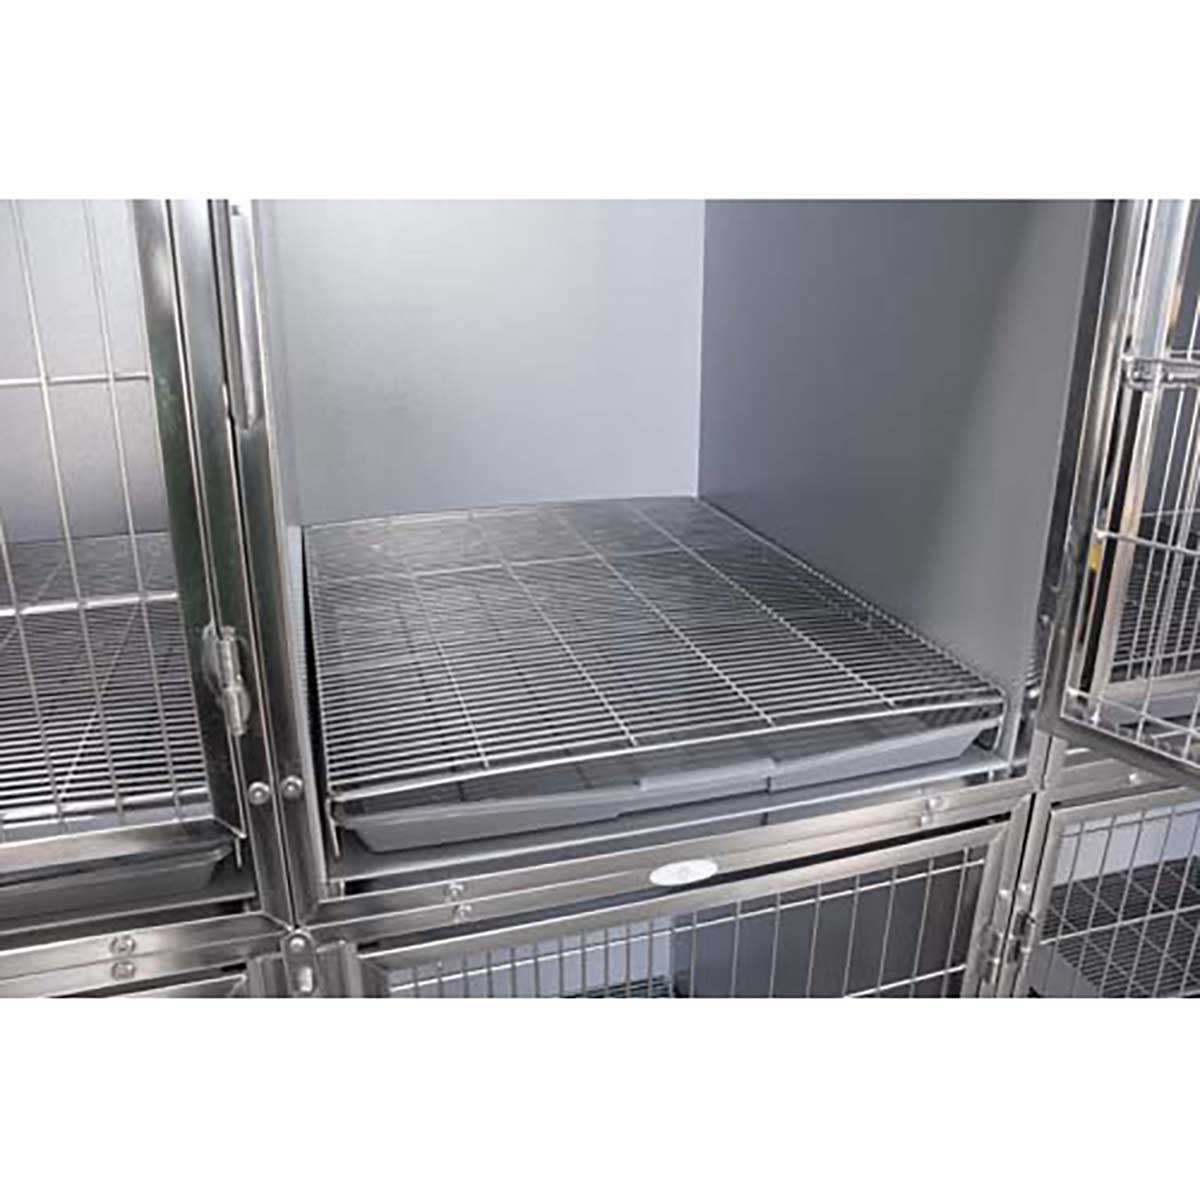 Set Of 2 Stainless Steel Floor Grate For PBP89440